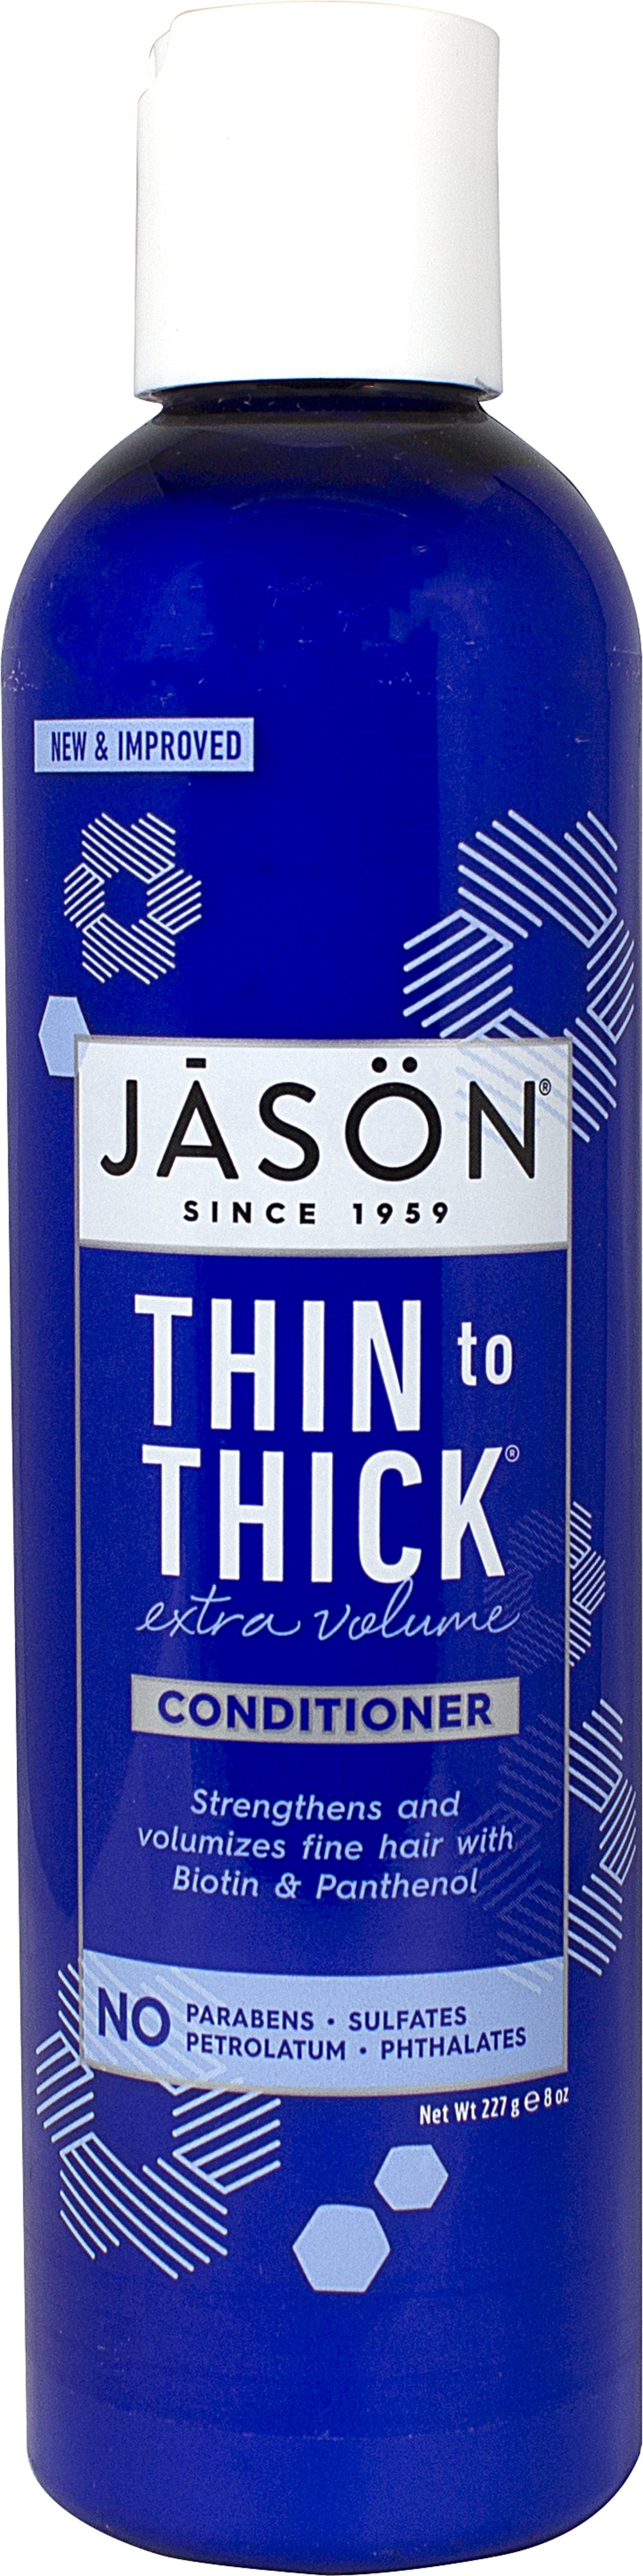 Jason® Thin To Thick® Conditioner <p><strong>From the Manufacturer:</strong></p><p>Healthy Hair System</p><p>Biotin + Panthenol</p><p>Vitamins A, C and E</p><p>Plant Proteins</p><p>Paraben Free</p><p>Jason® Thin to Thick® Extra Volume Conditioner adds bounce, body and shine to fine, limp hair.  This strengthening conditioner combines Panthenol and Biotin with nourishing Vitamins A, C and